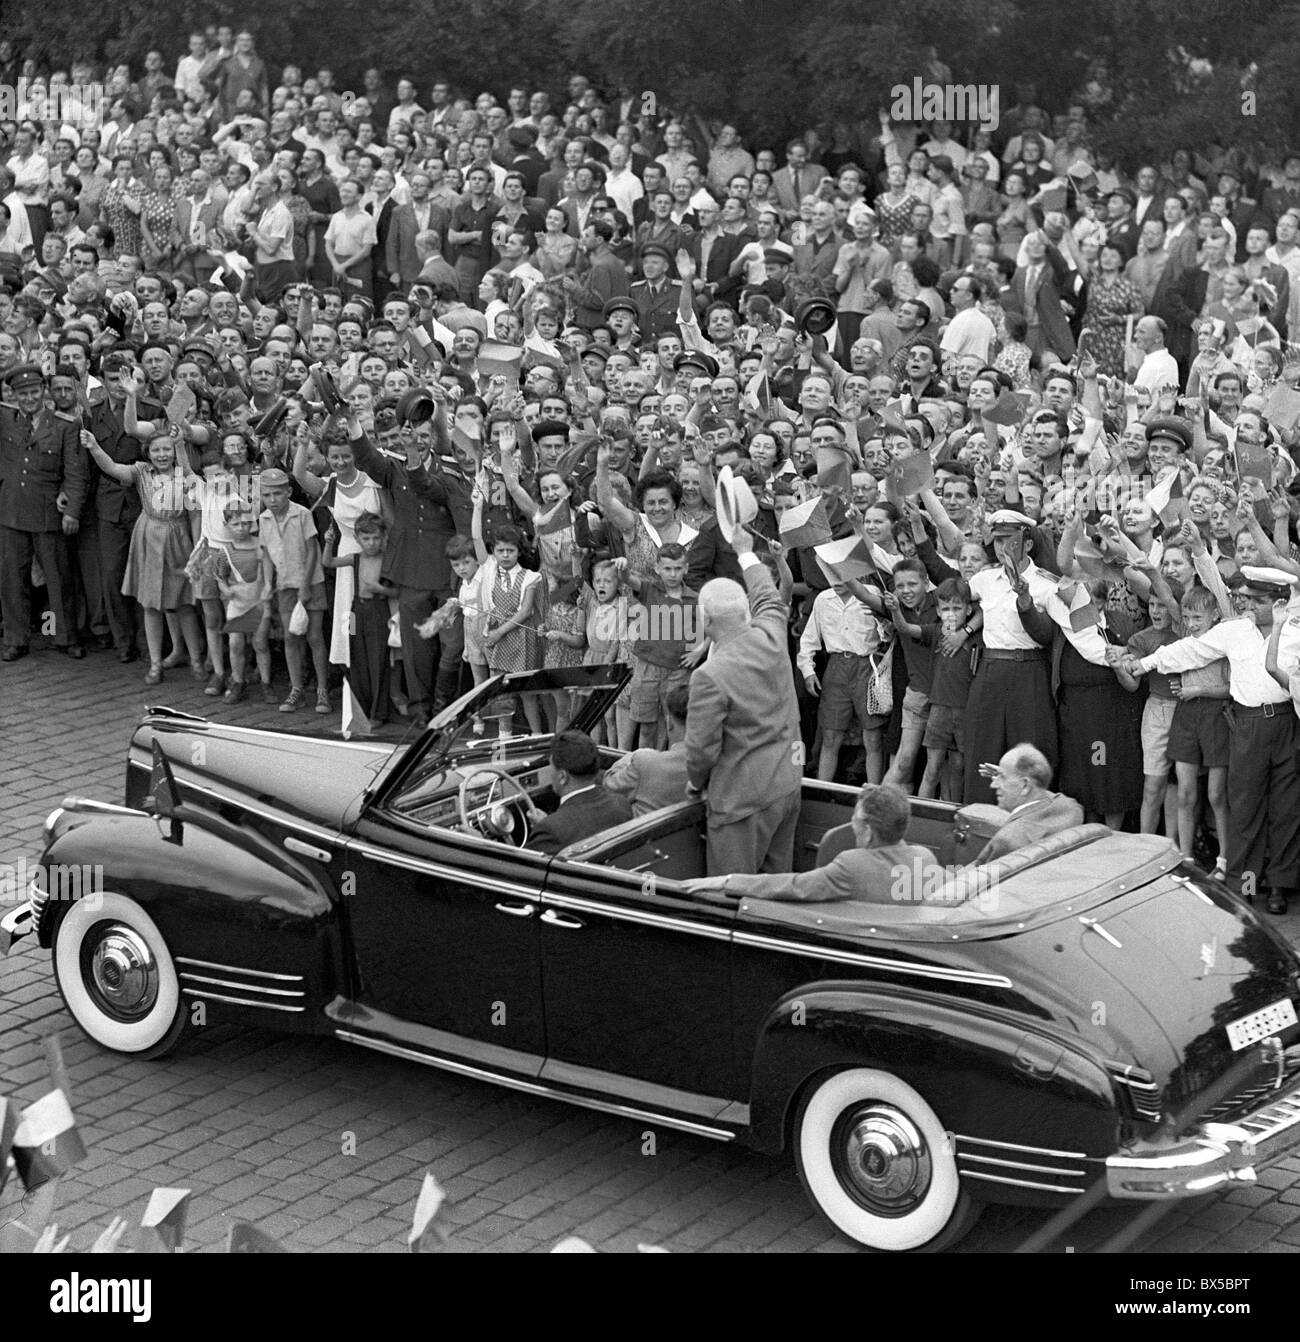 Nikita Khrushchev, car, people - Stock Image